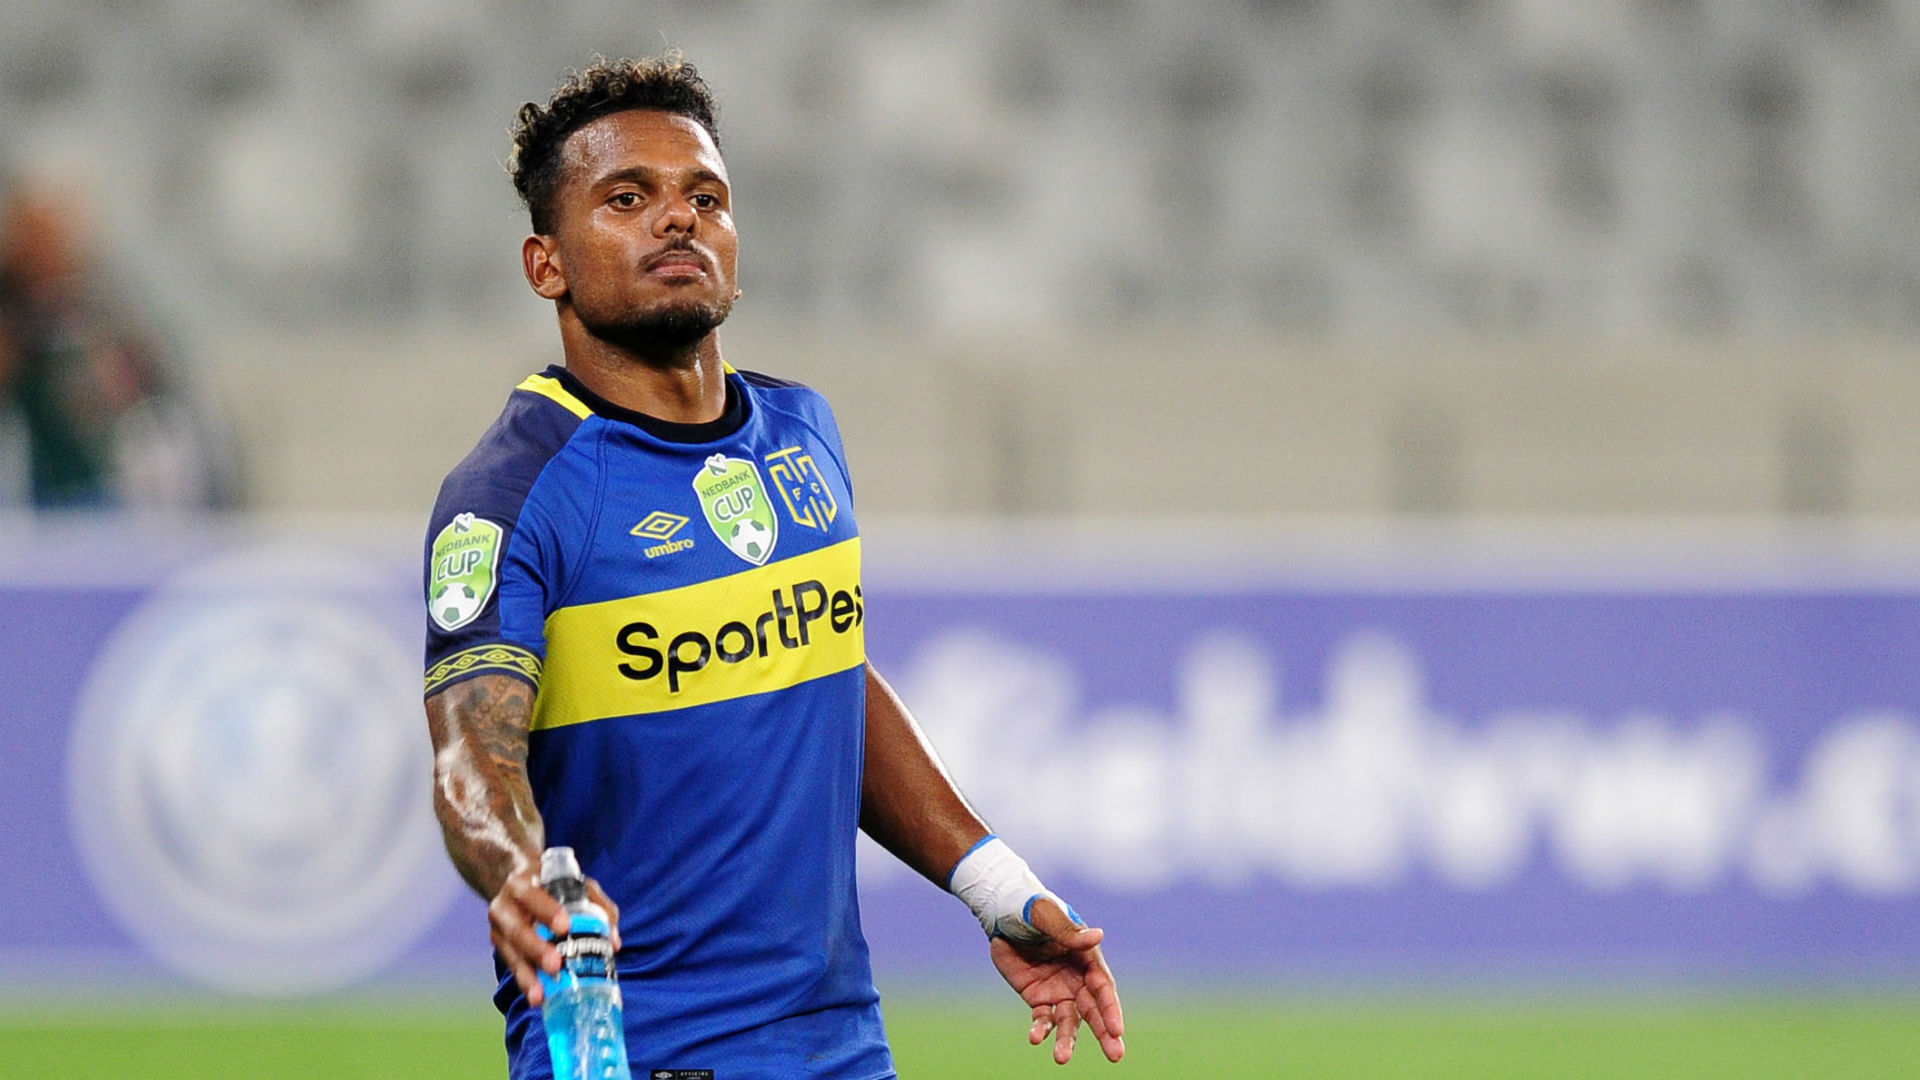 Kermit Erasmus, Cape Town City, February 2019